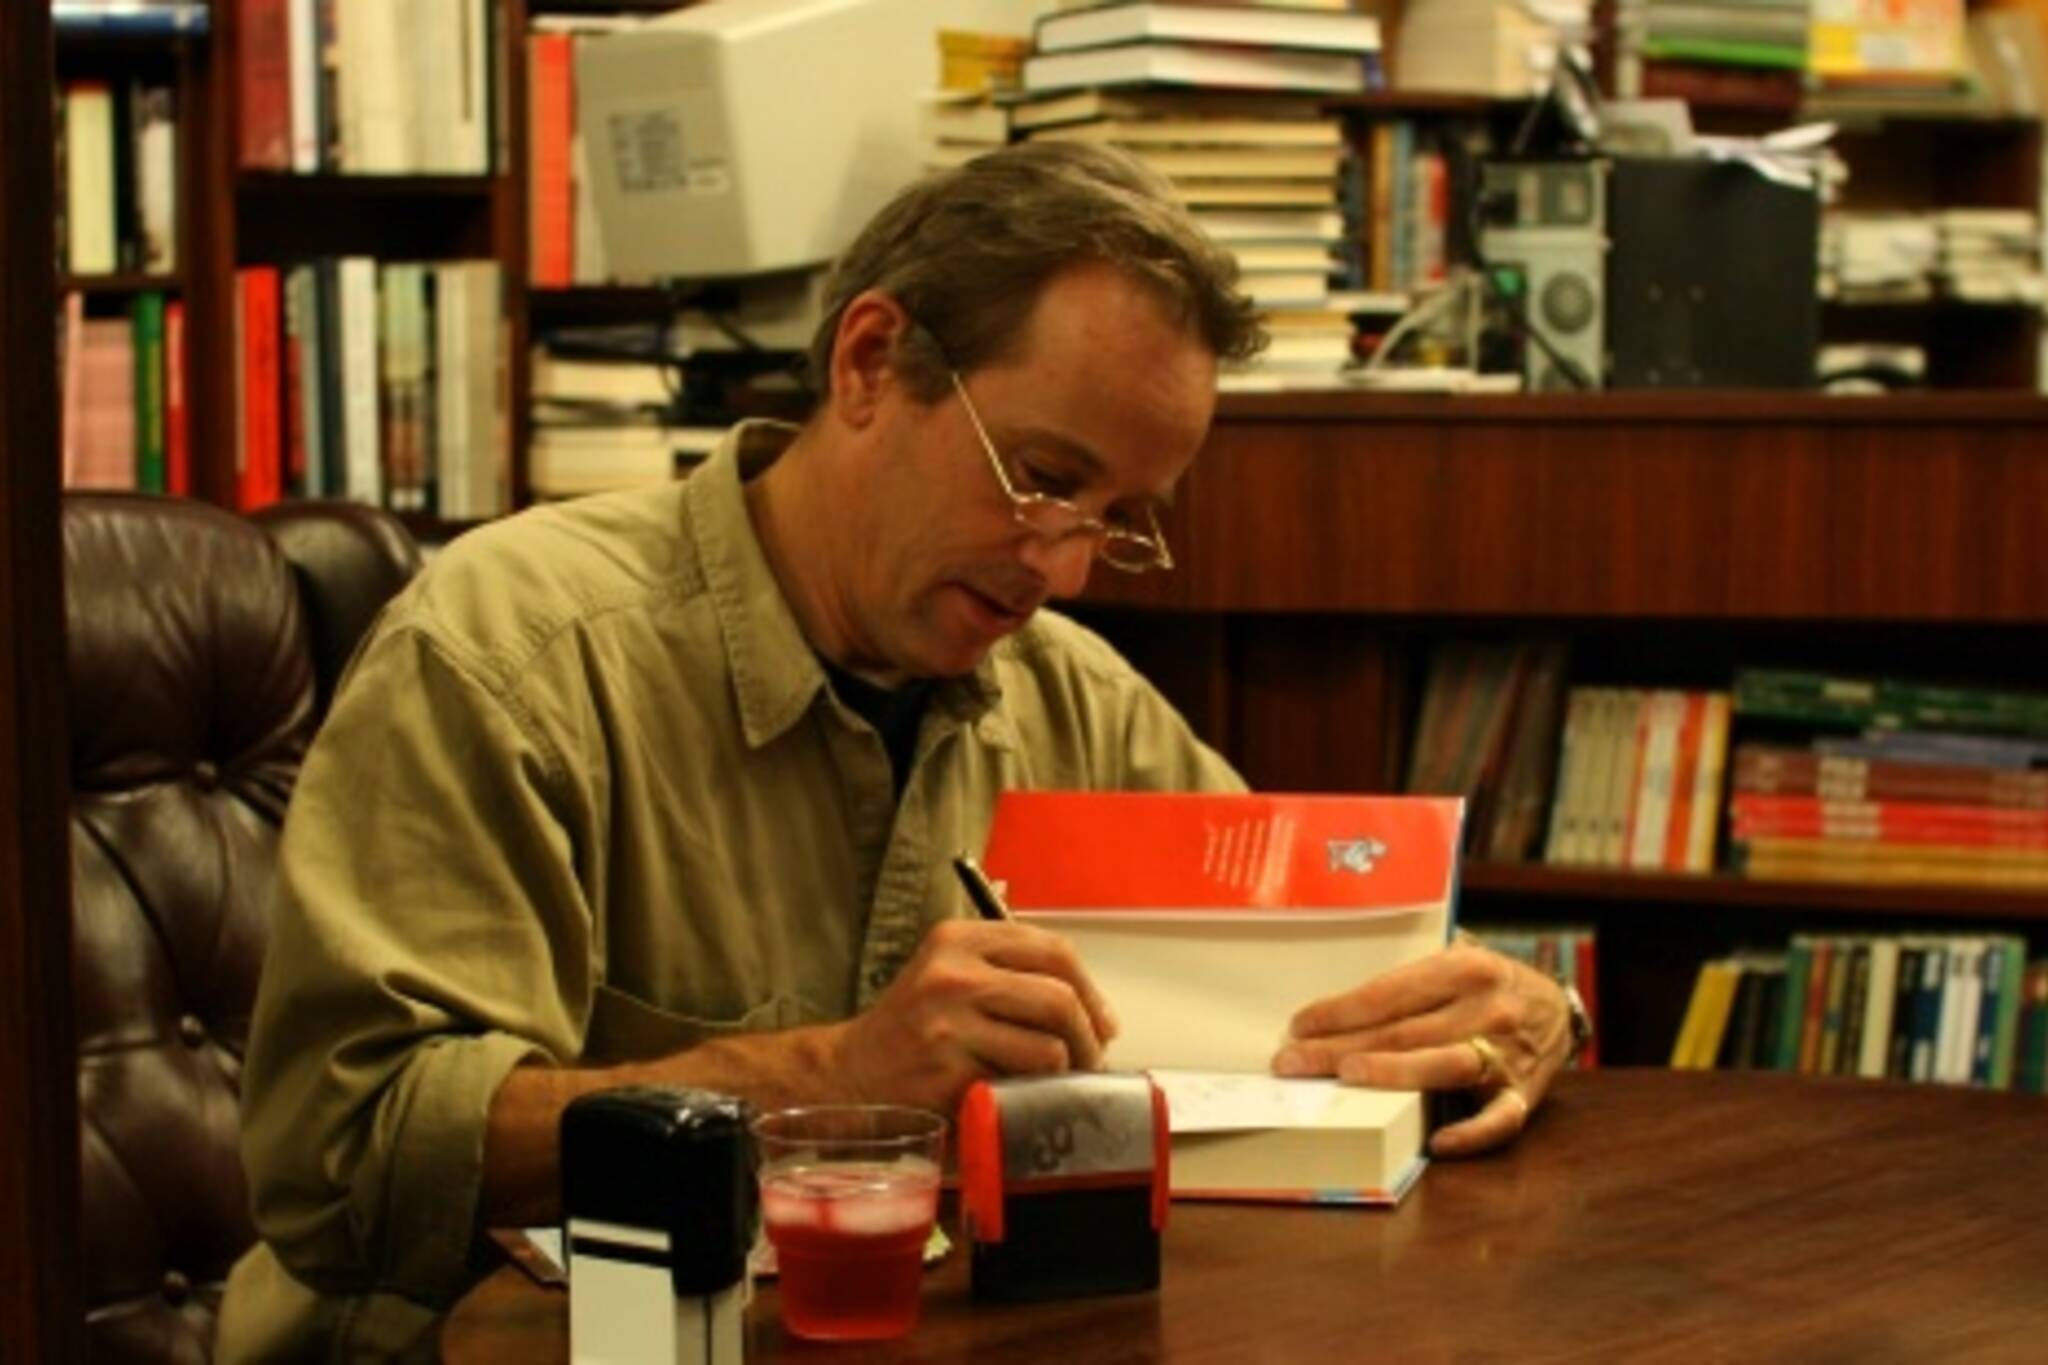 An utterly charming Jasper Fforde signs books at The Sleuth